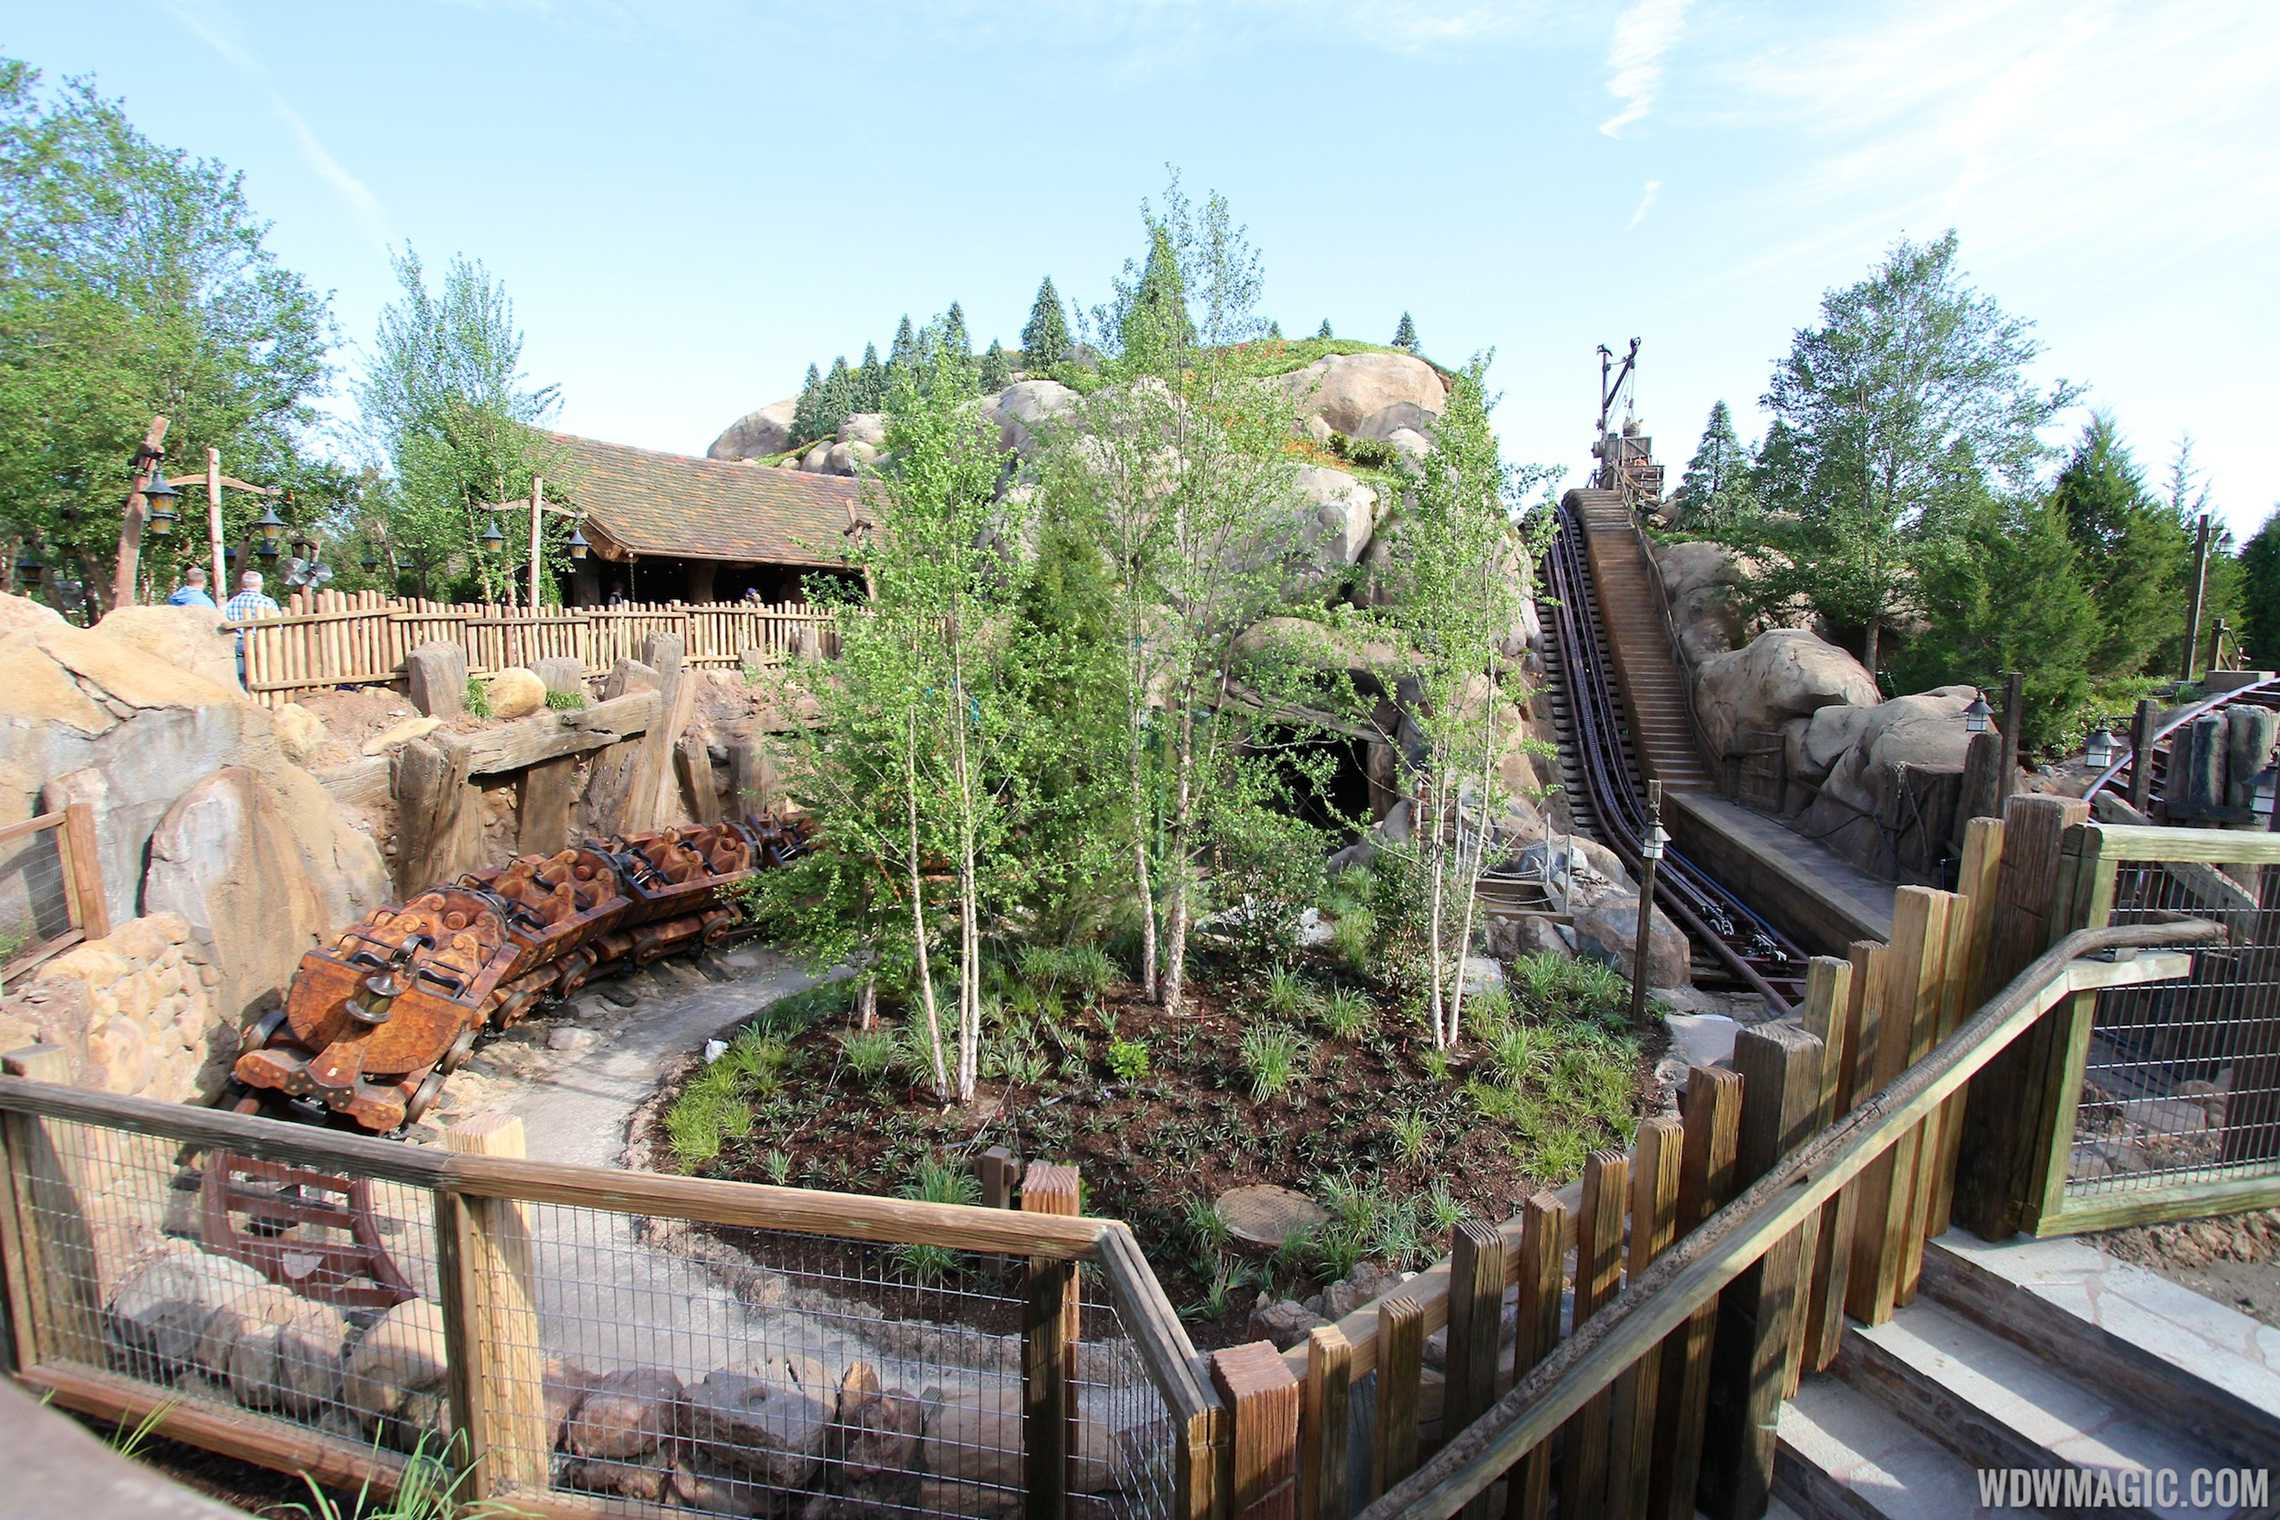 Seven Dwarfs Mine Train lift and track